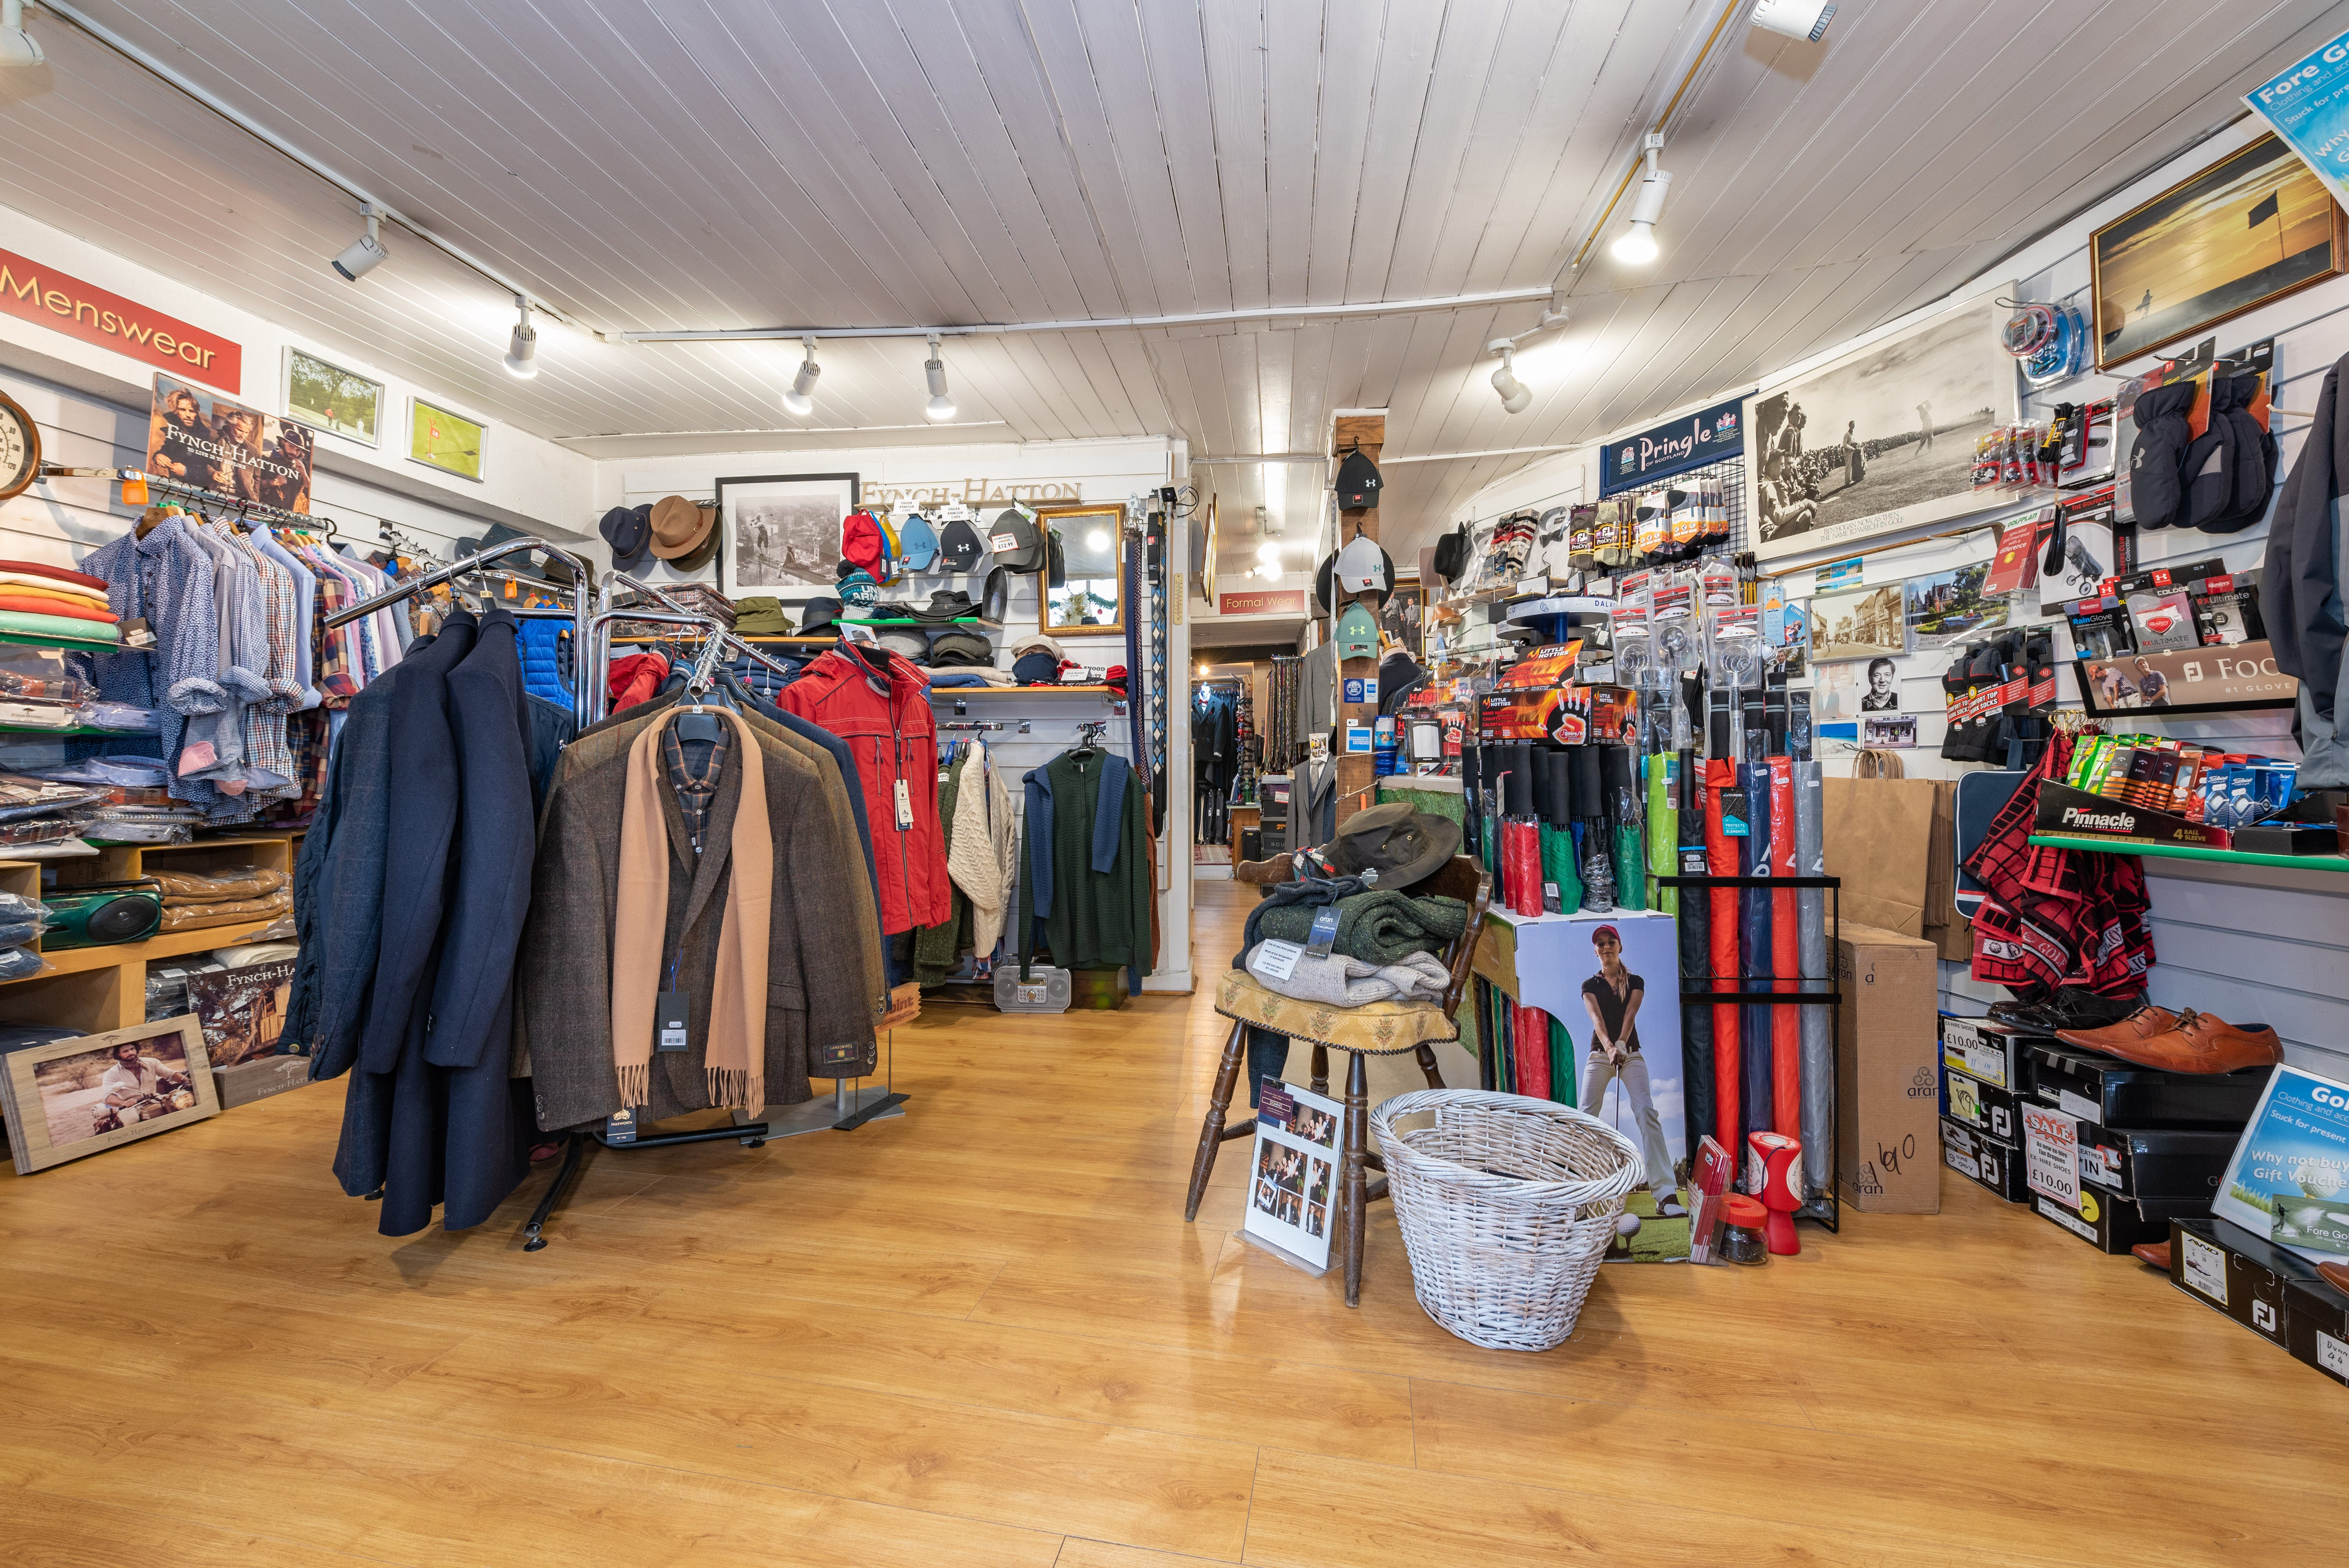 10-10A Buttermarket, Thame, Investment / Retail / Office For Sale - 10_10A Buttermarket-4.jpg